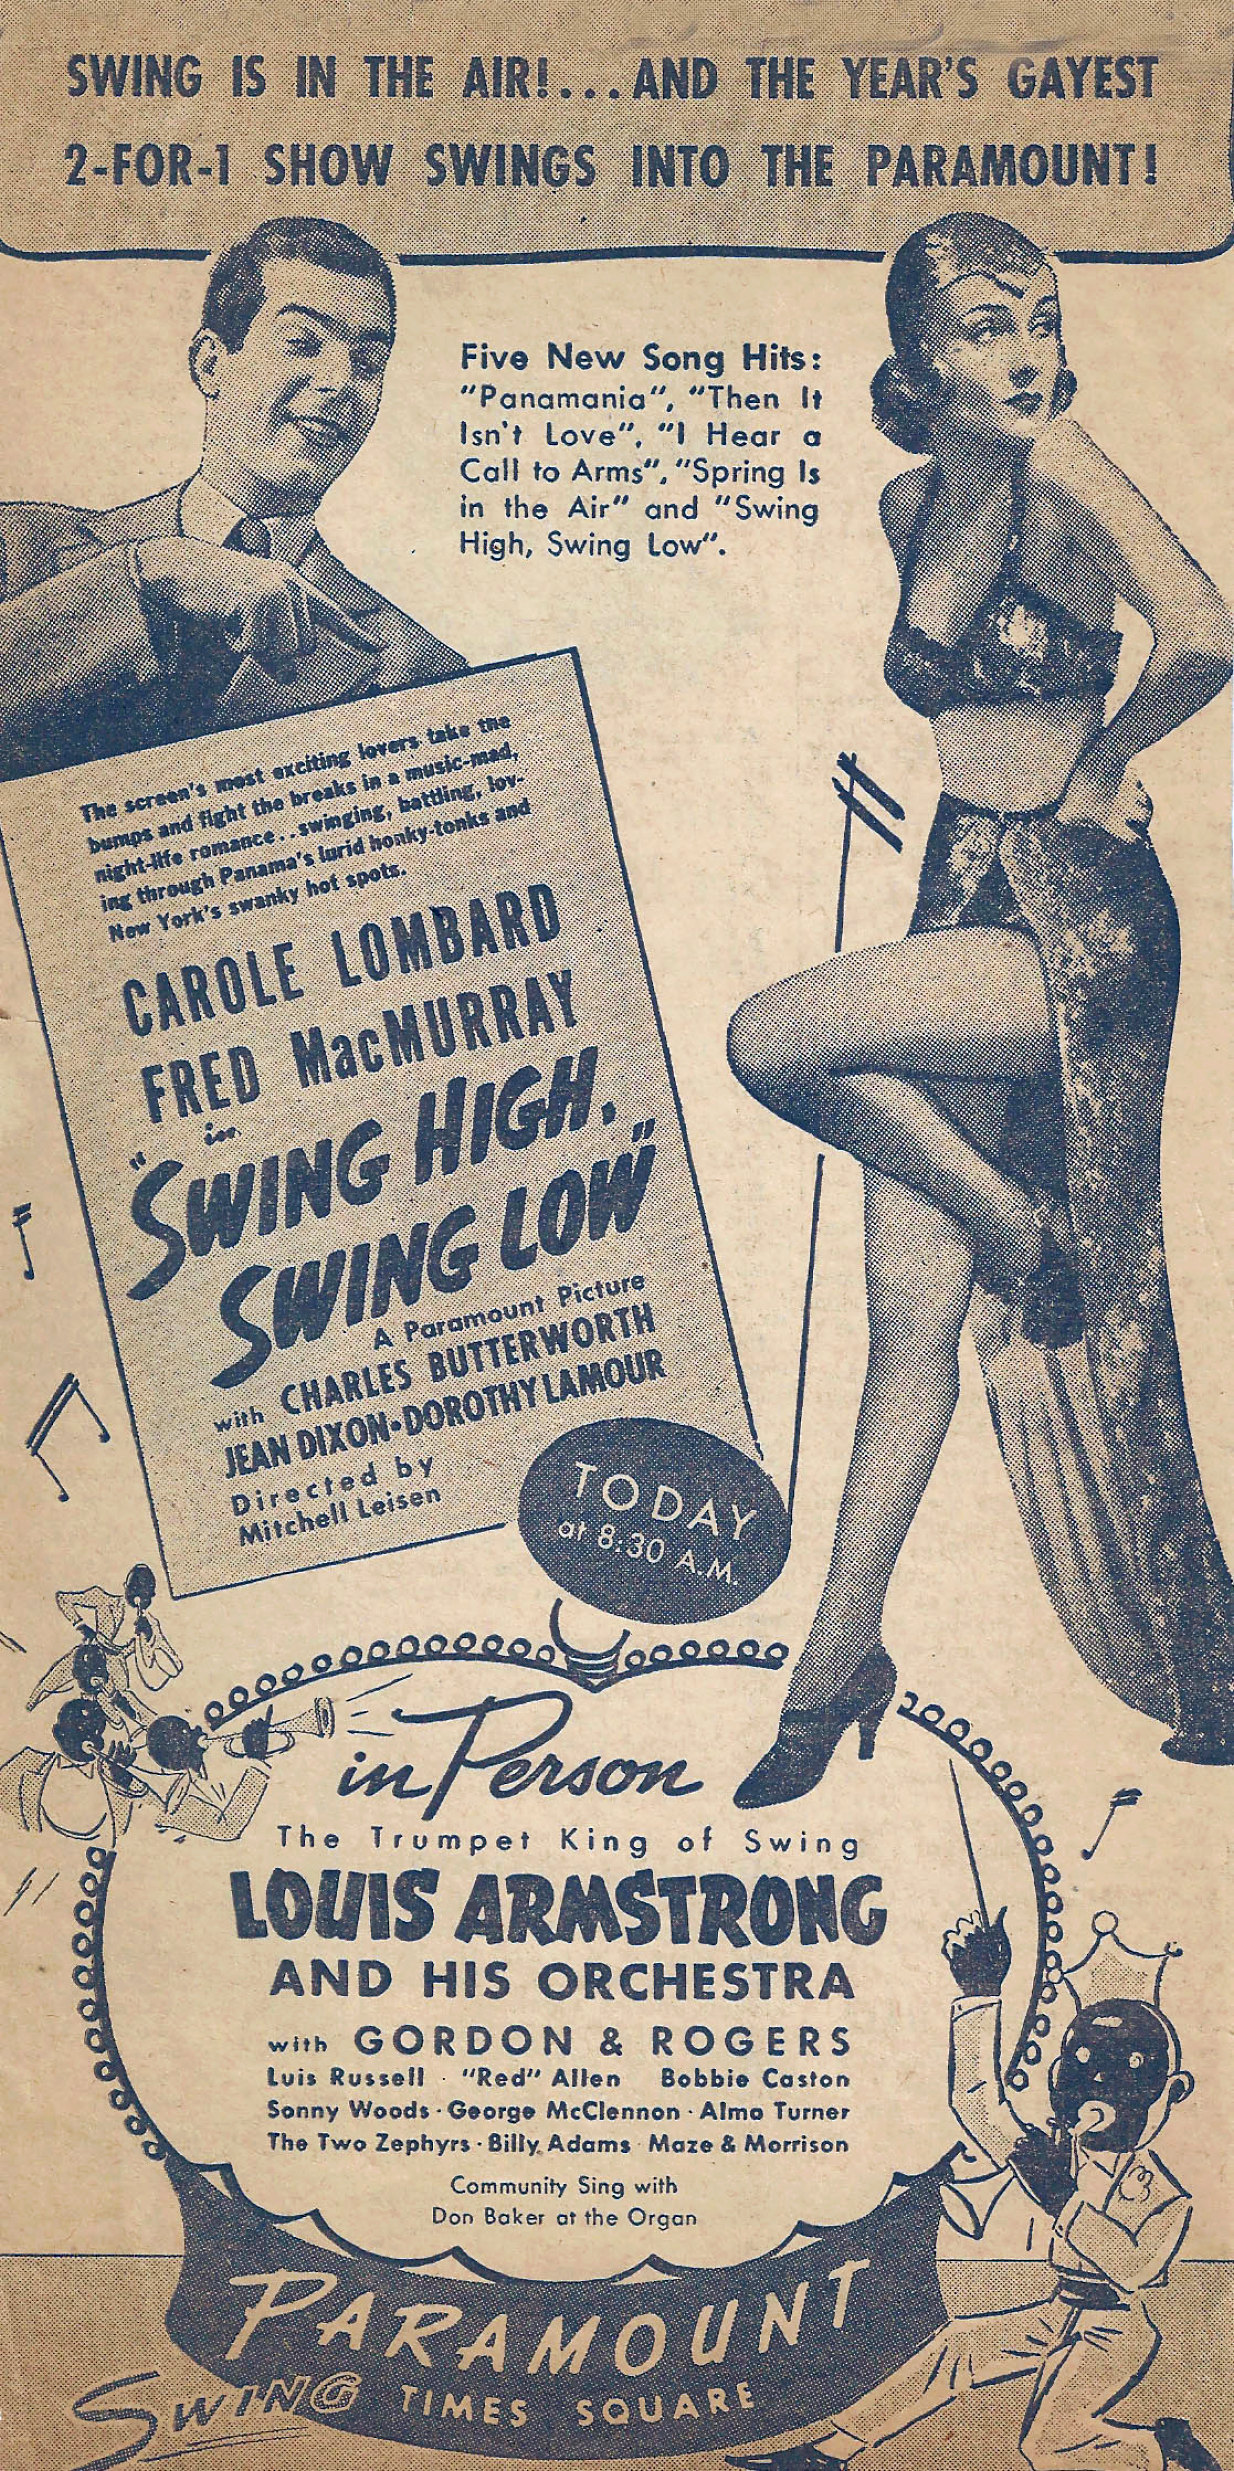 carole lombard swing high, swing low ad new york paramount larger